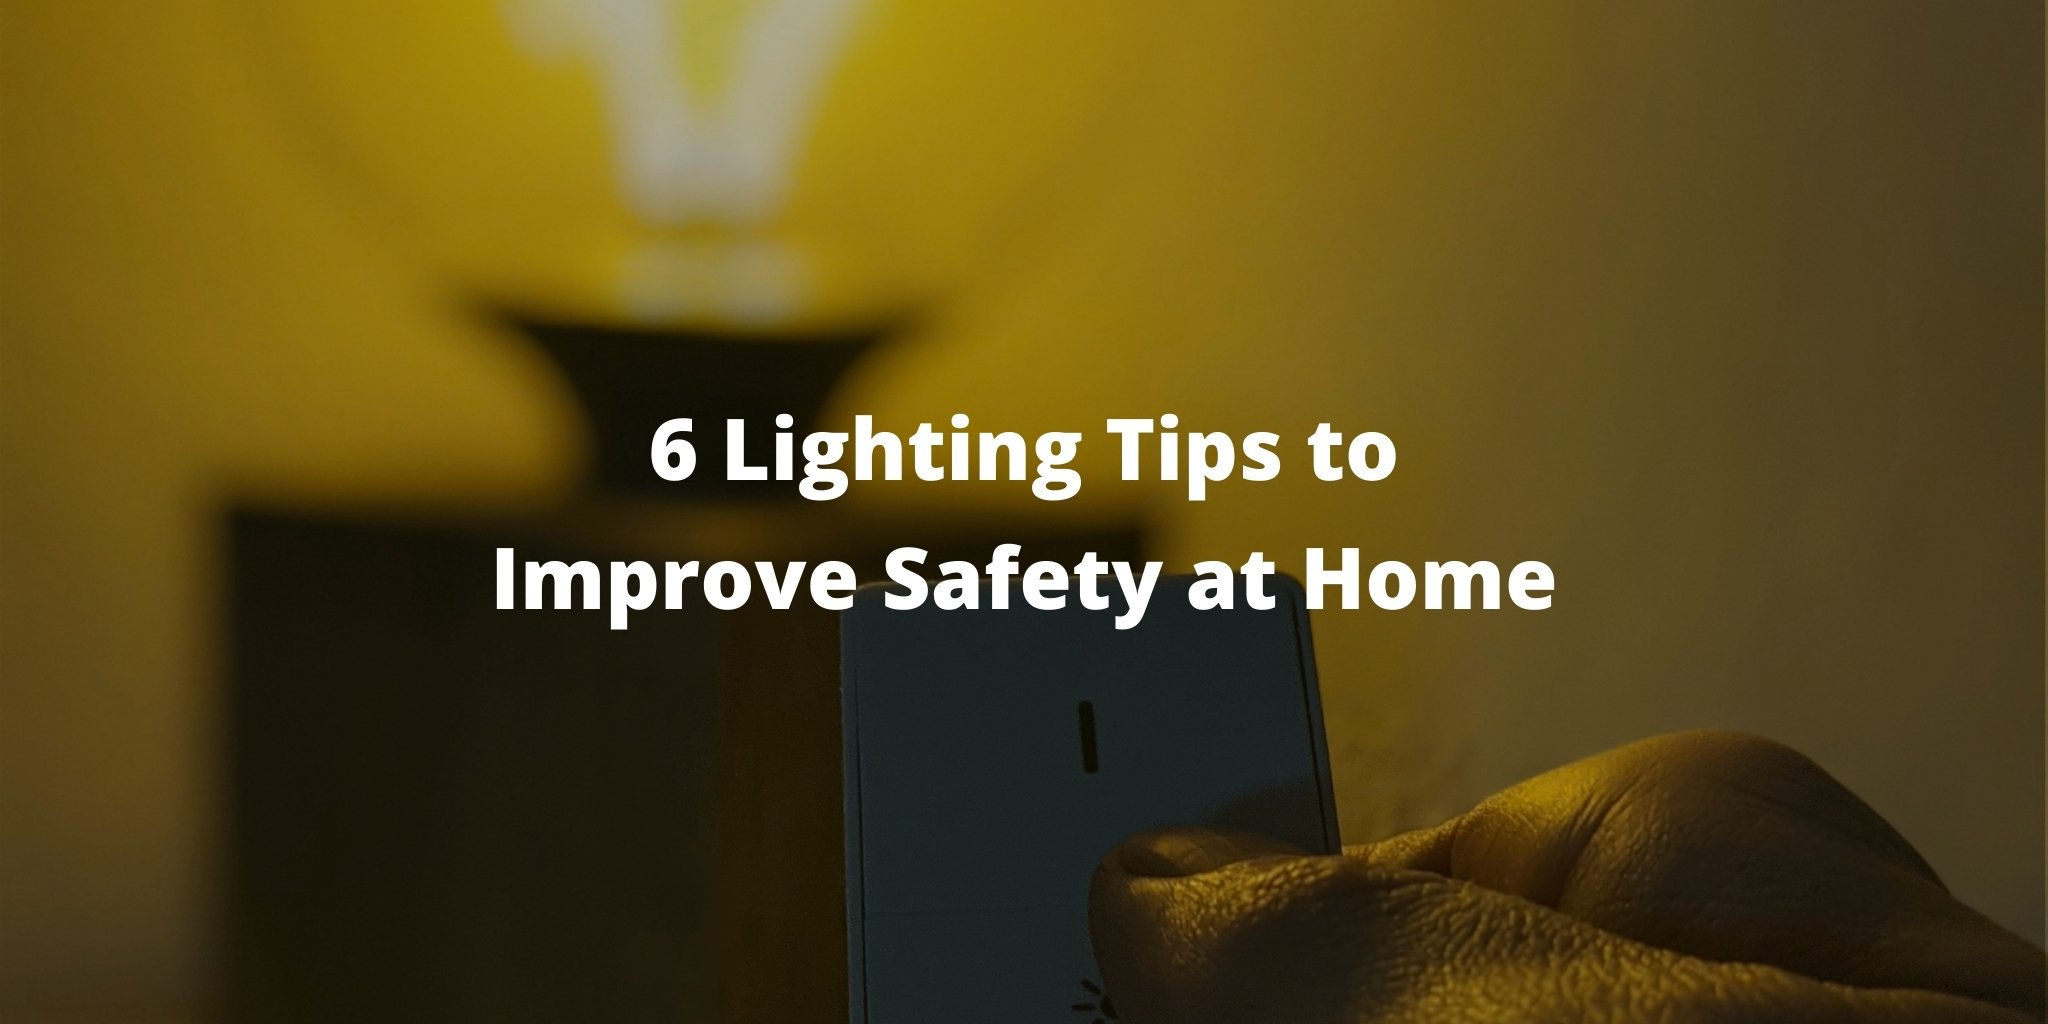 6 Lighting Tips to Improve Safety at Home